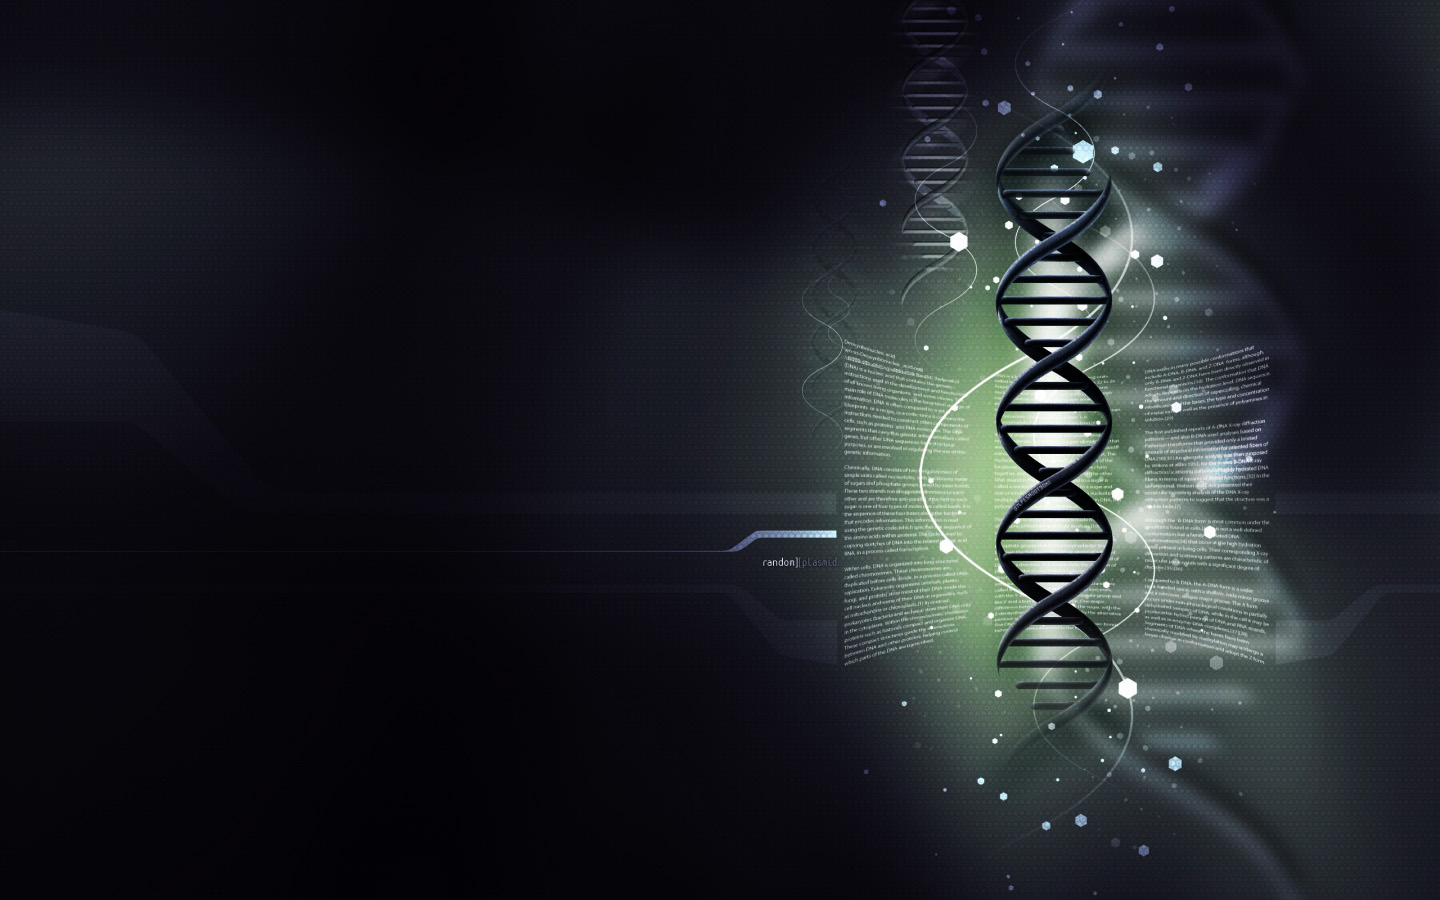 Abstract DNA Wallpaper 1440x900 Abstract DNA 1440x900